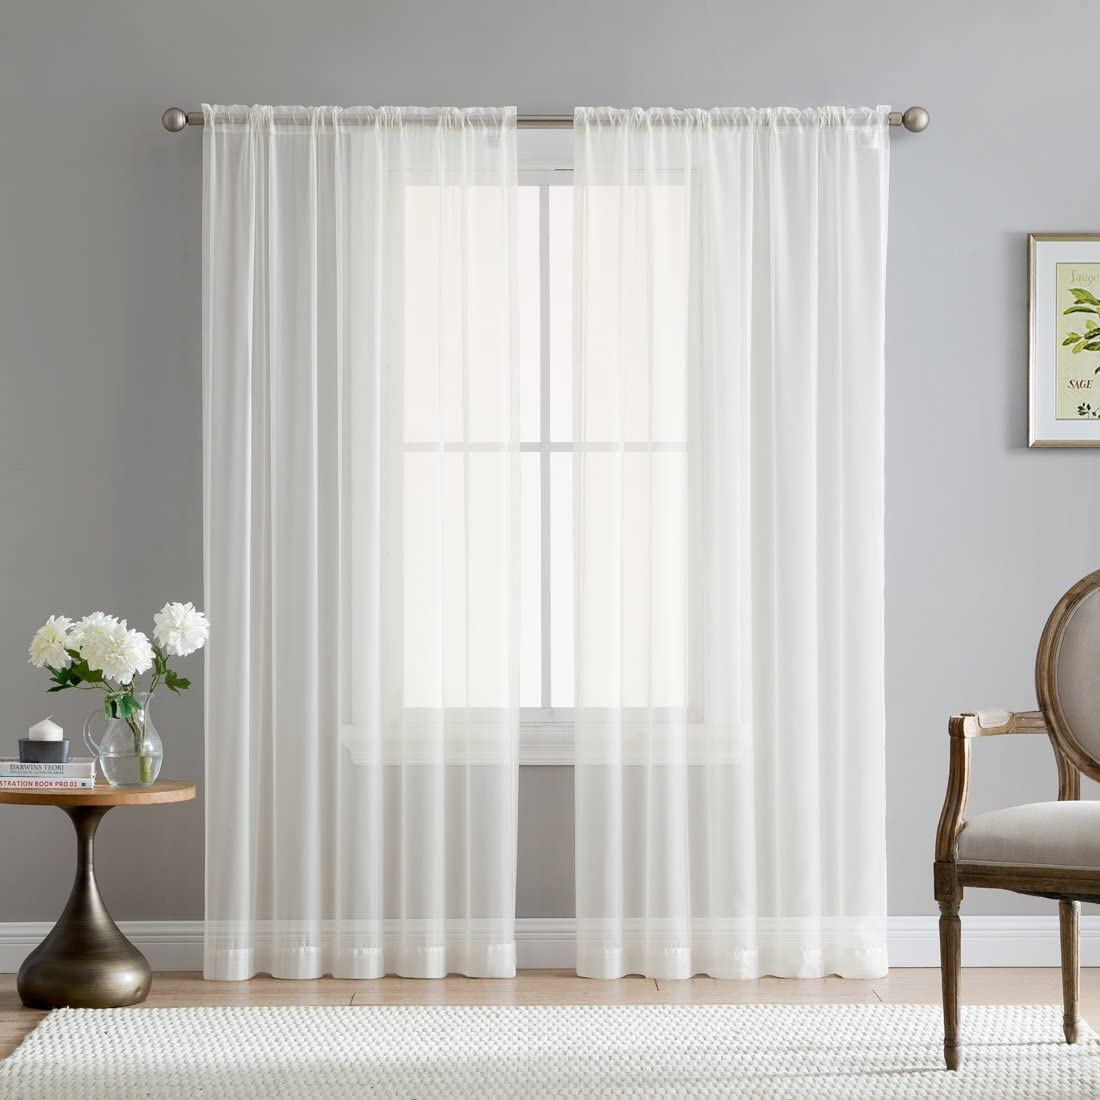 HLC.ME Ivory Sheer Voile Window Treatment Rod Pocket Curtain Panels for Bedroom and Living Room (54 x 84 inches Long, Set of 2)